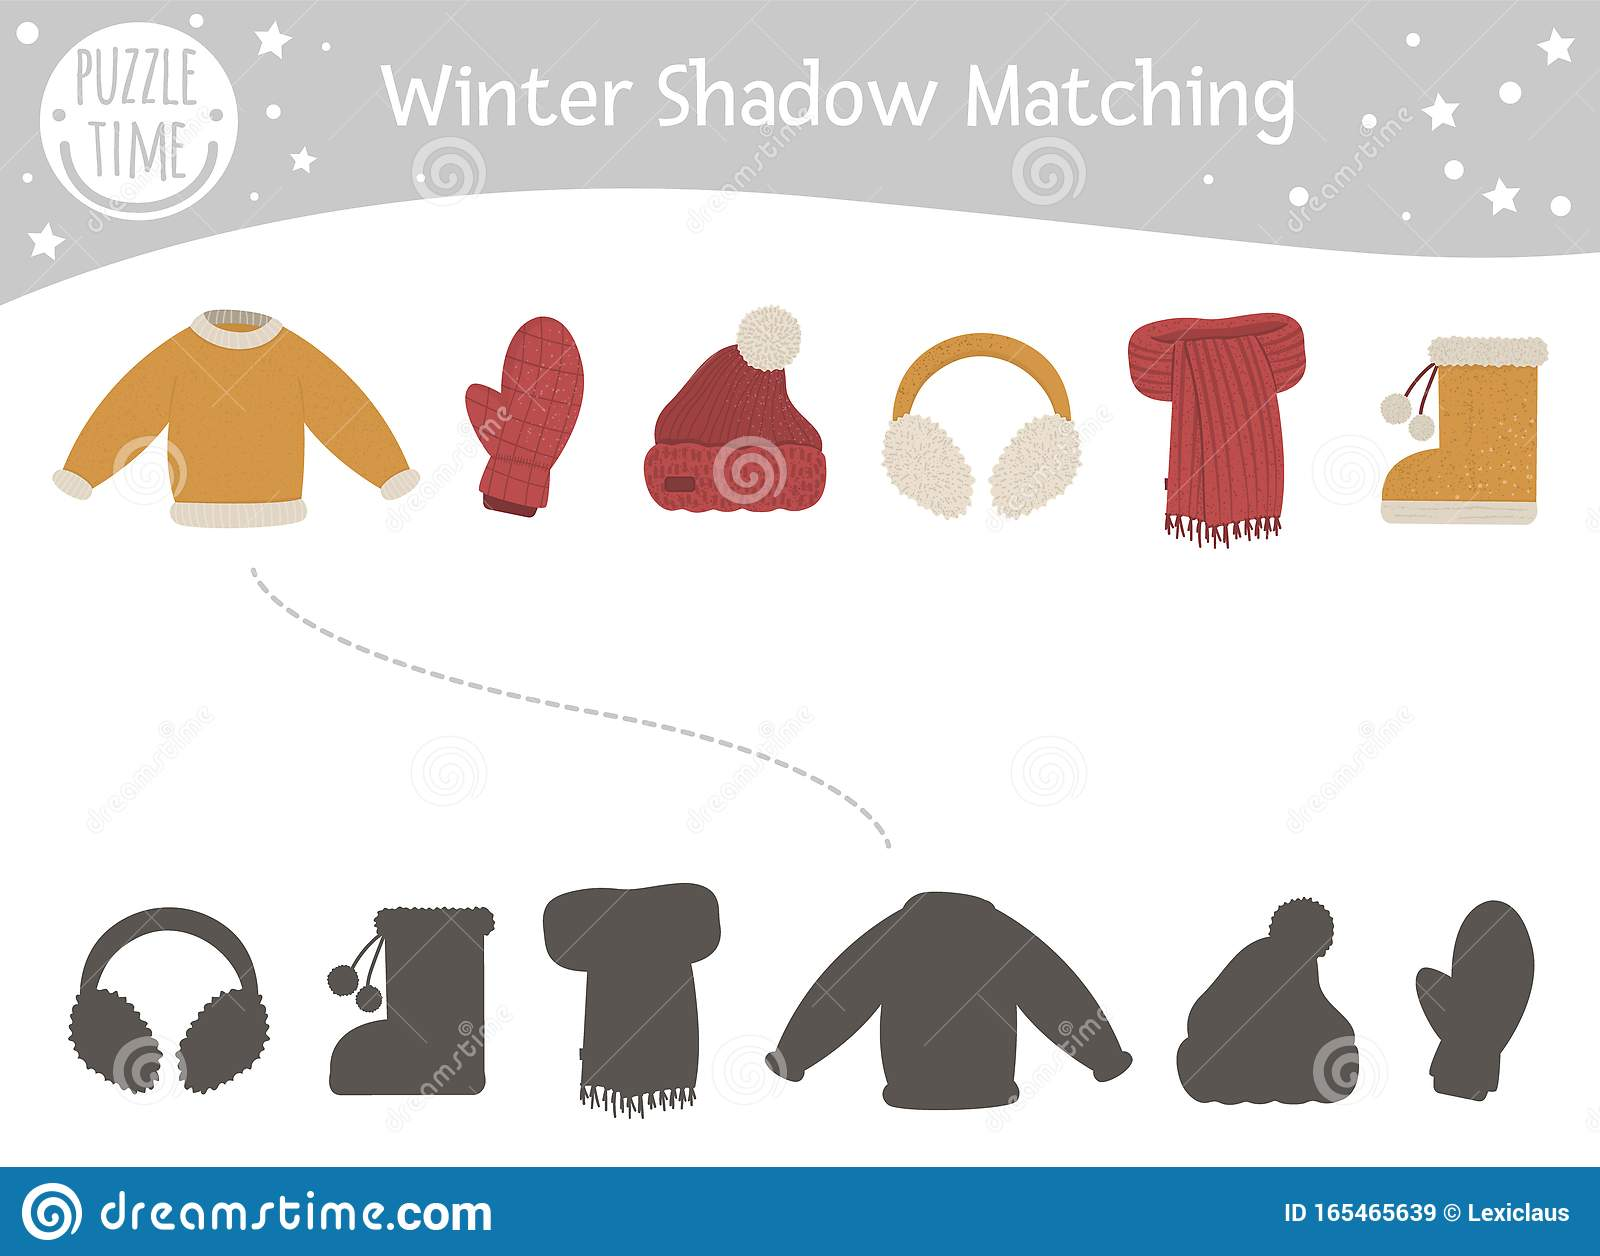 Winter Shadow Matching Activity For Children With Warm